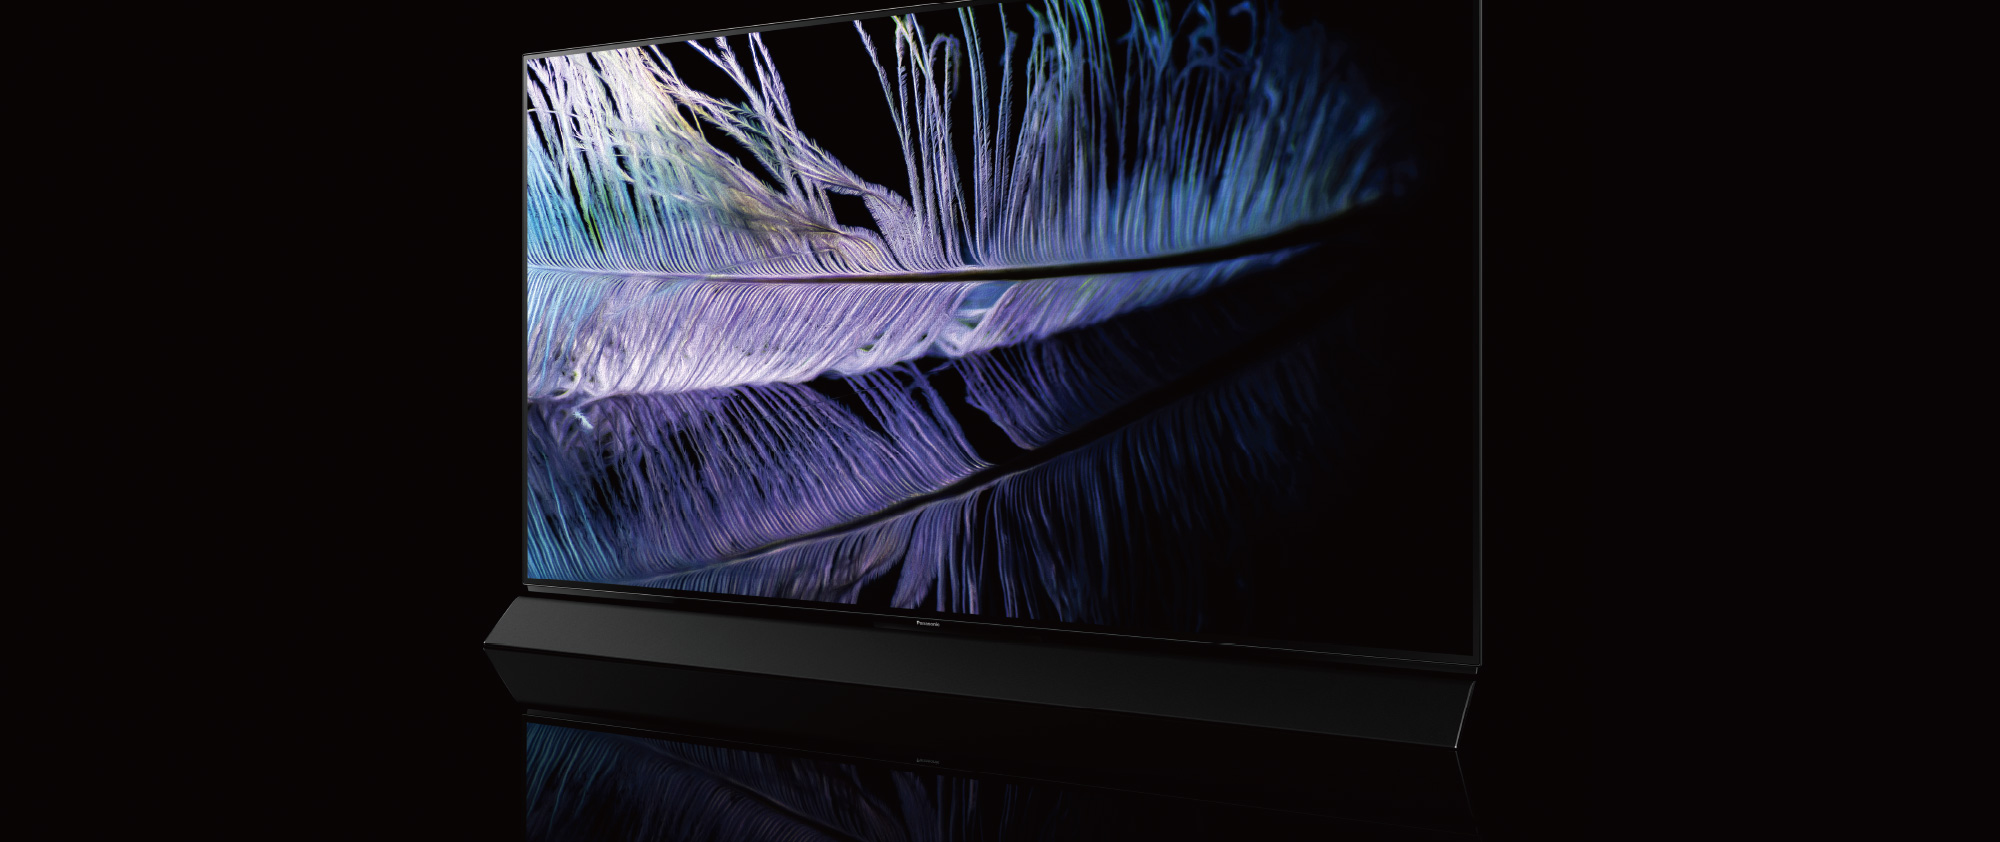 OLED - True Detail, Discover the details in light and black. - Panasonic TV